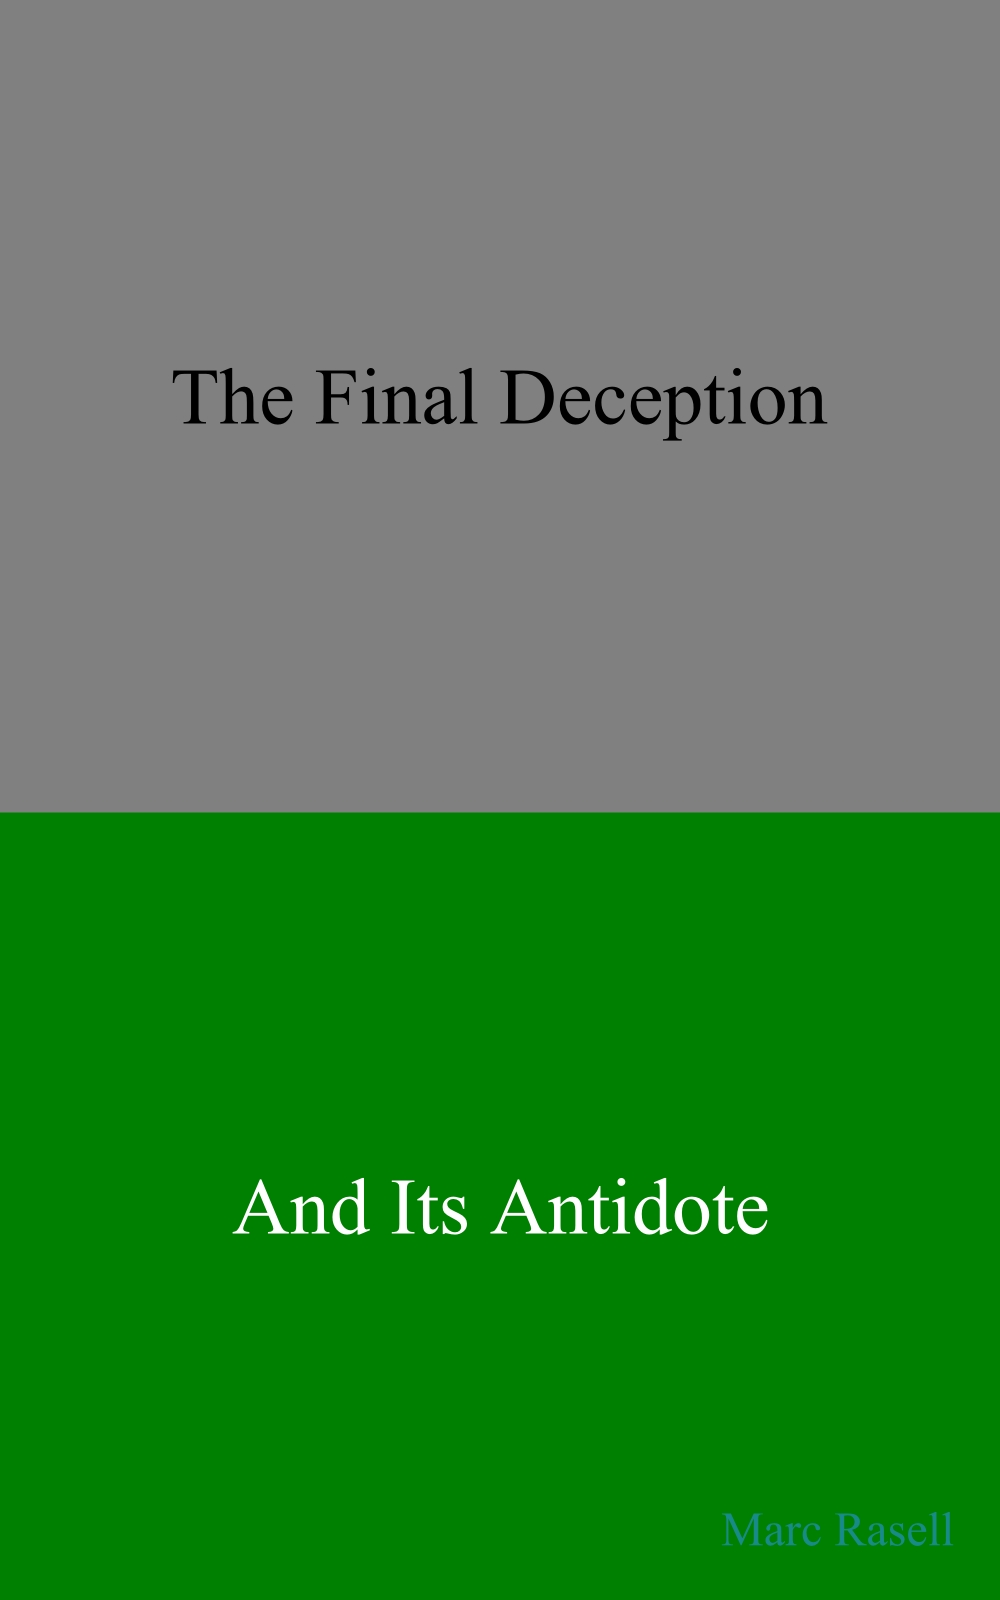 The Final Deception and Its Antidote